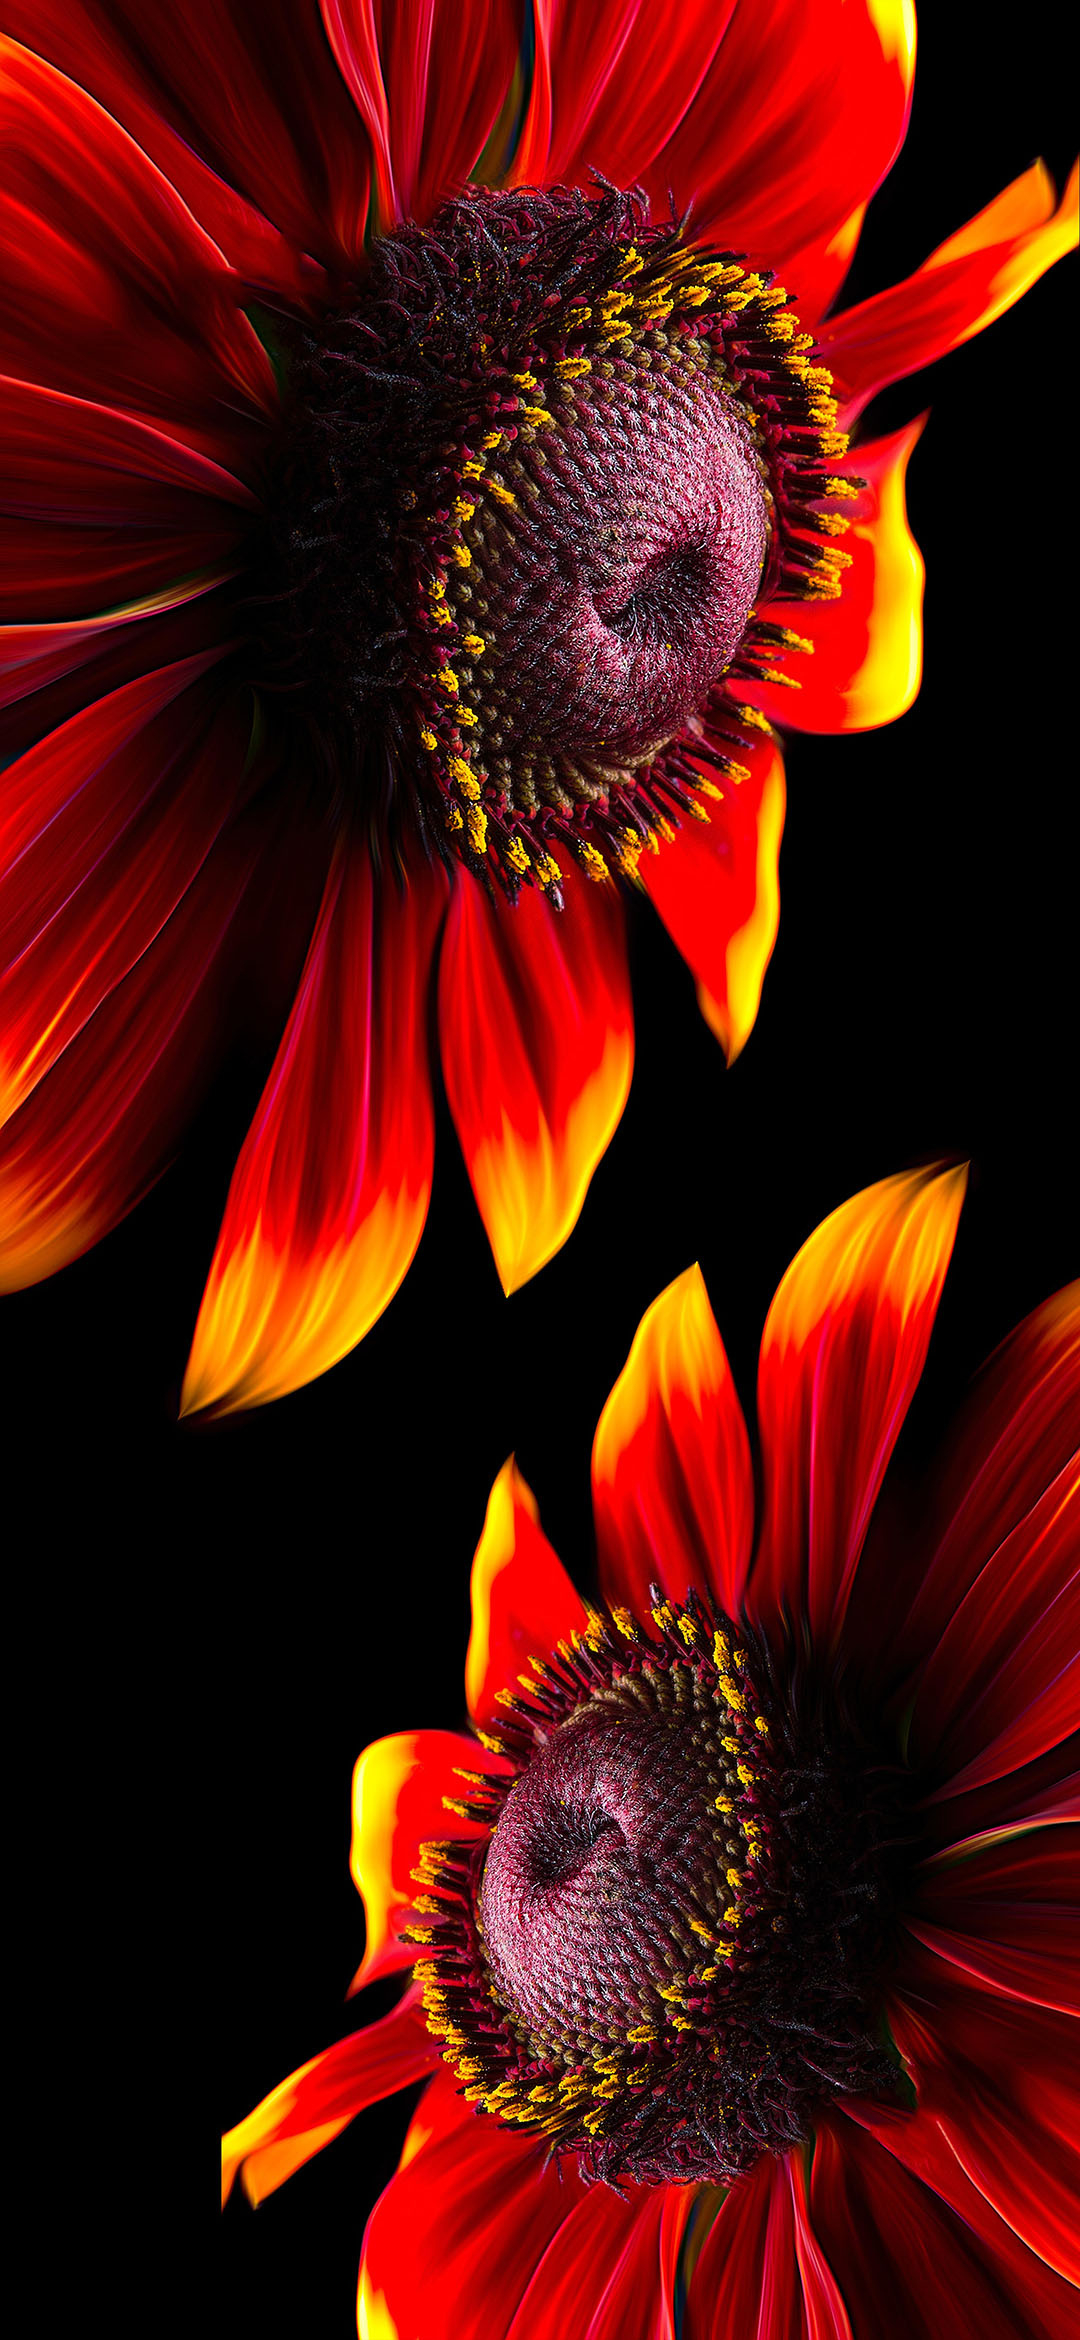 Red-Petaled-Flower-iphone-style-wallpaper